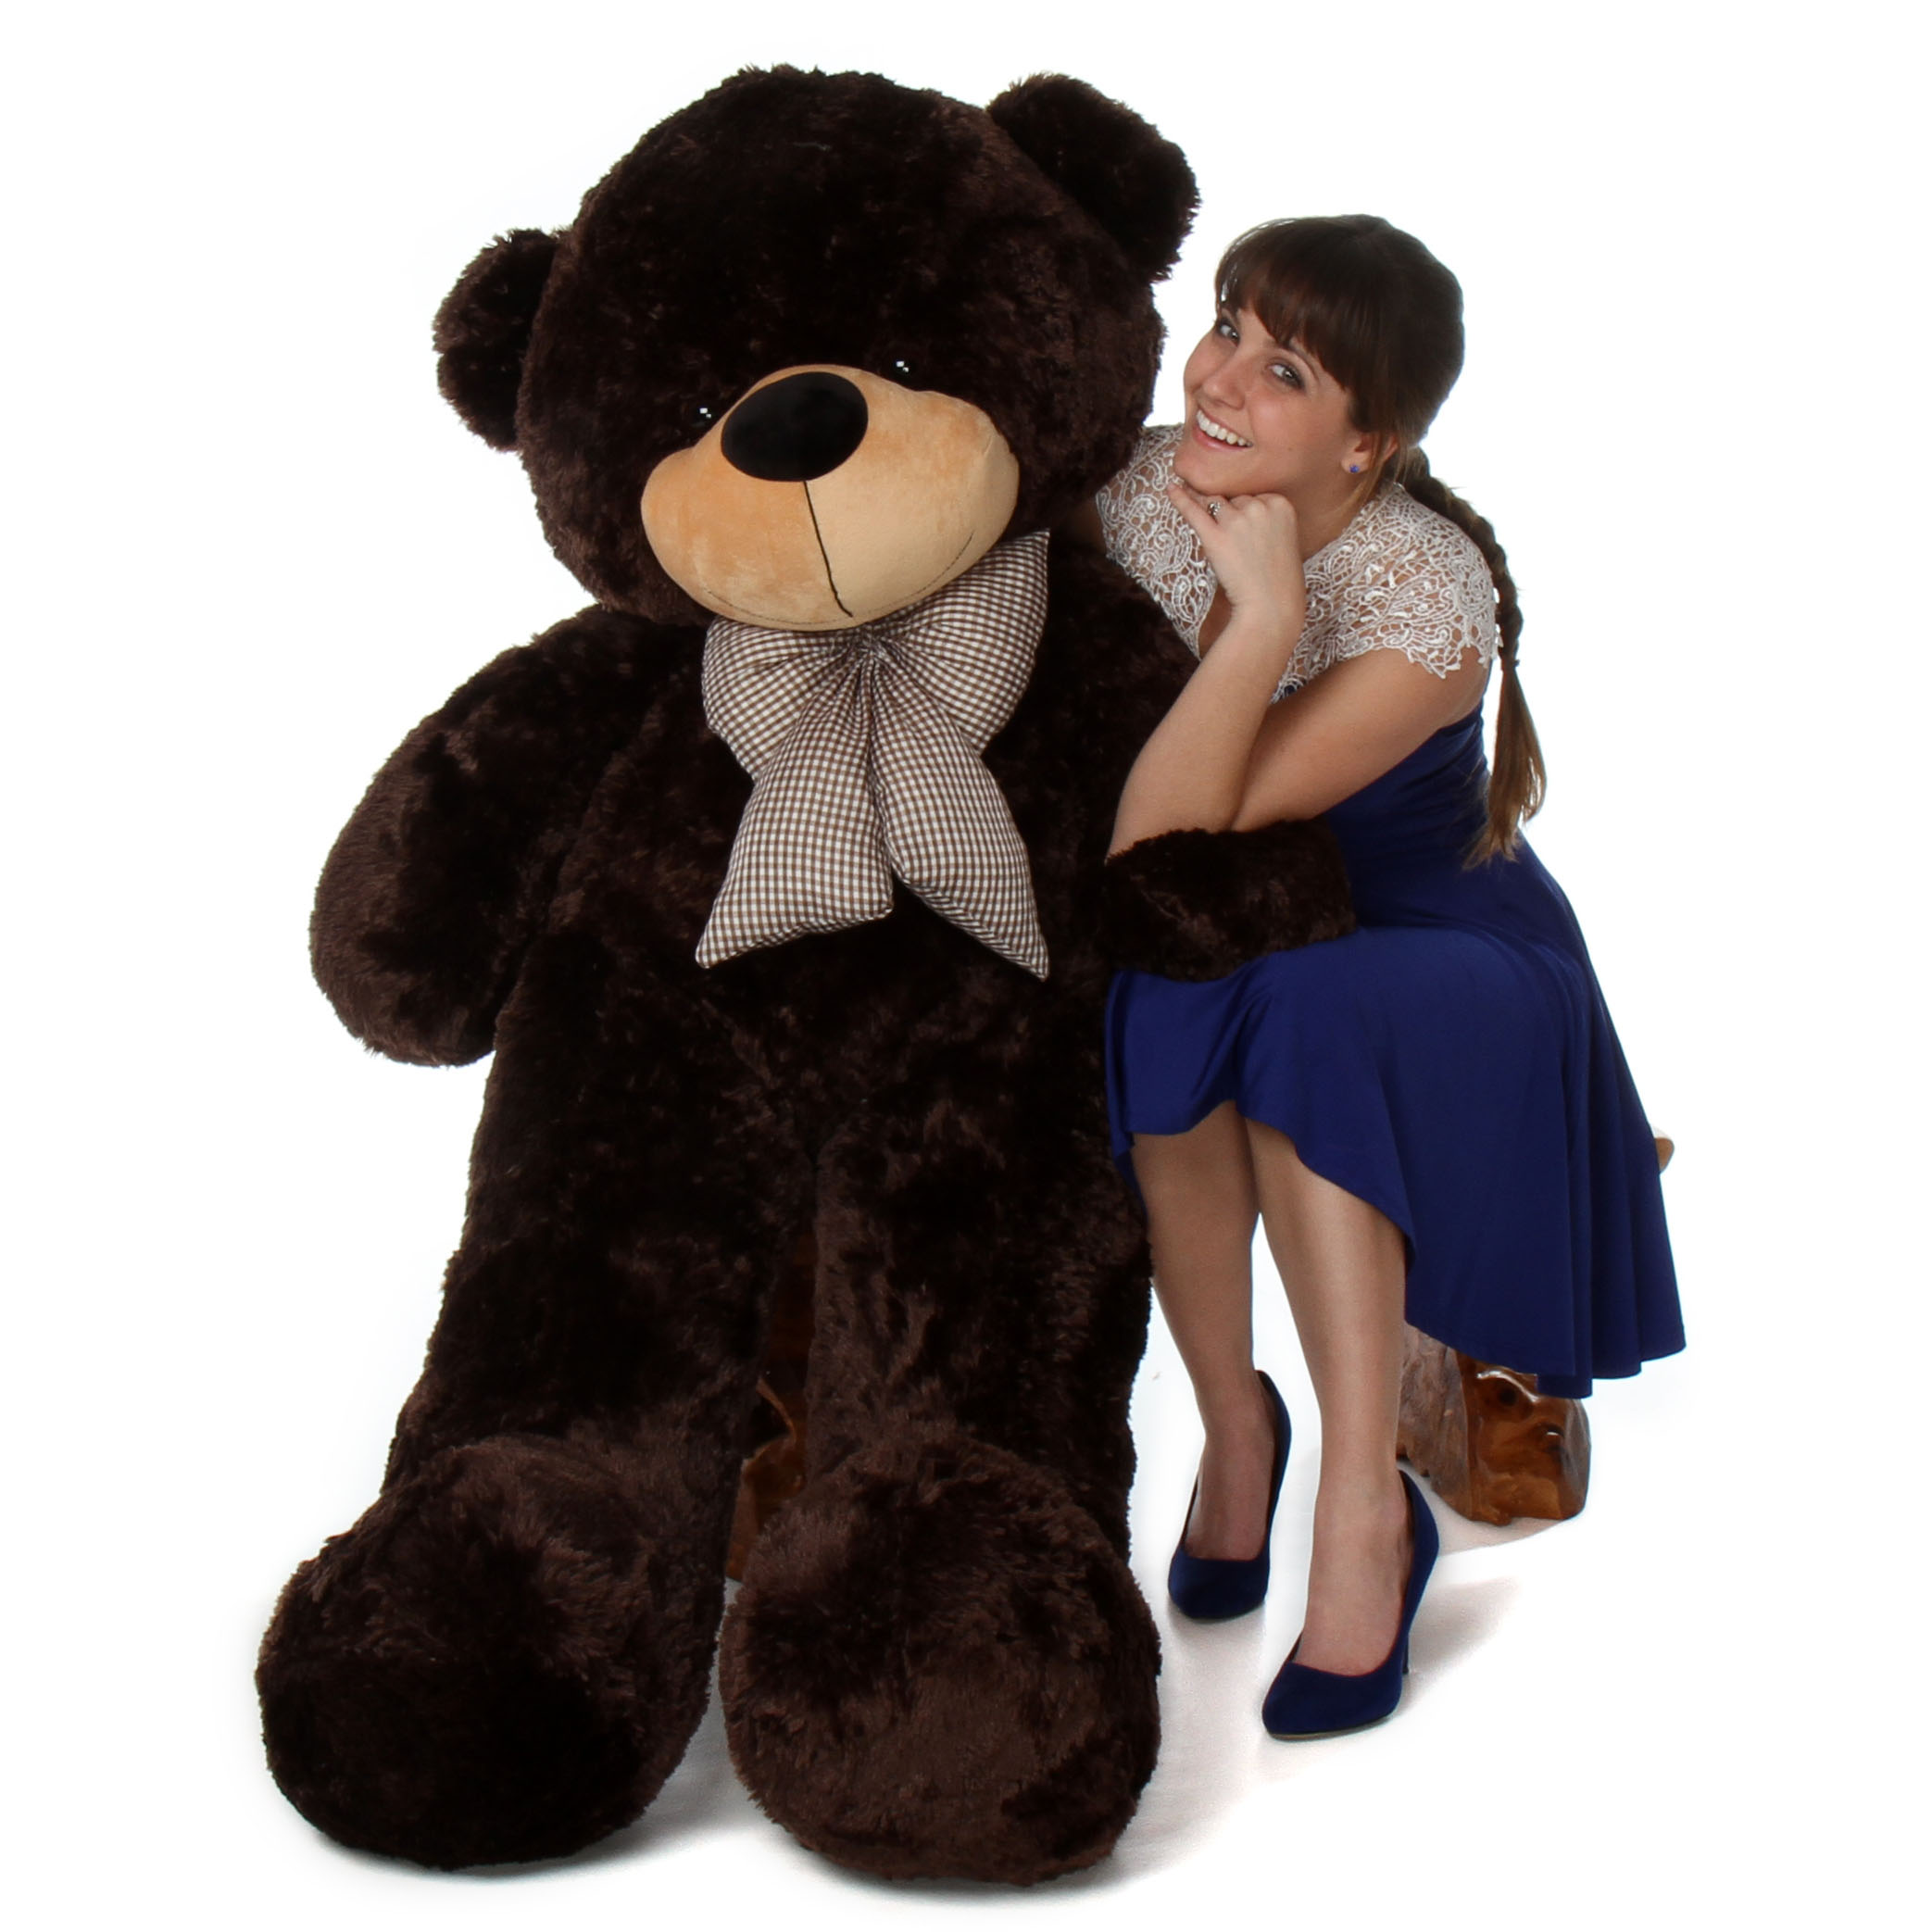 5ft-life-size-jumbo-teddy-bear-brownie-cuddles-softest-dark-chocolate-brown-fur.jpg